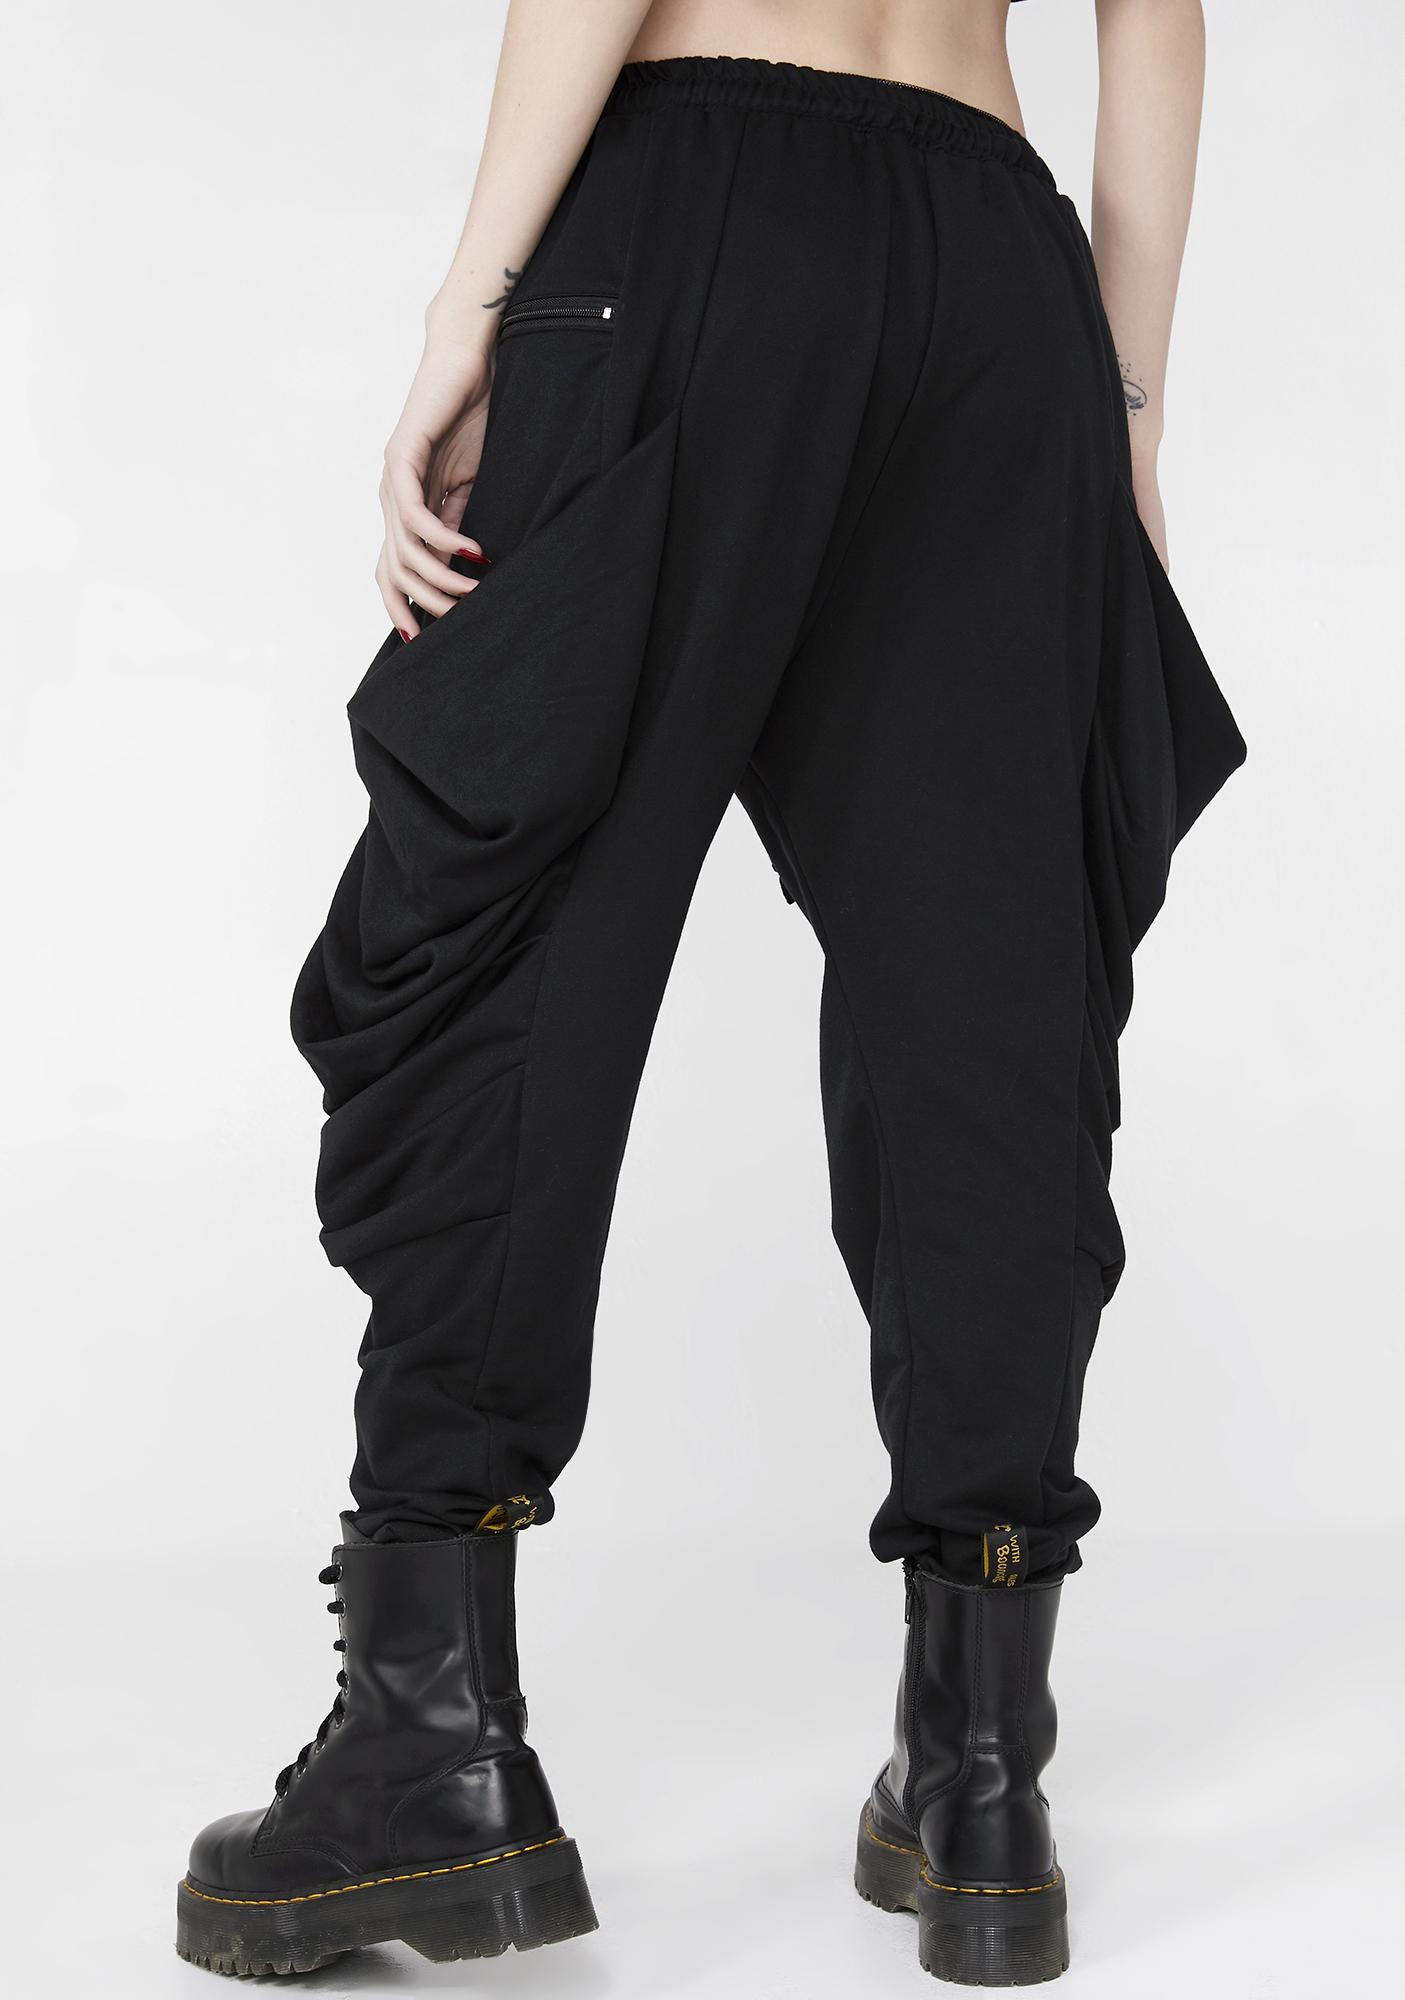 MNML Wicked Release Drop-Crotch Joggers